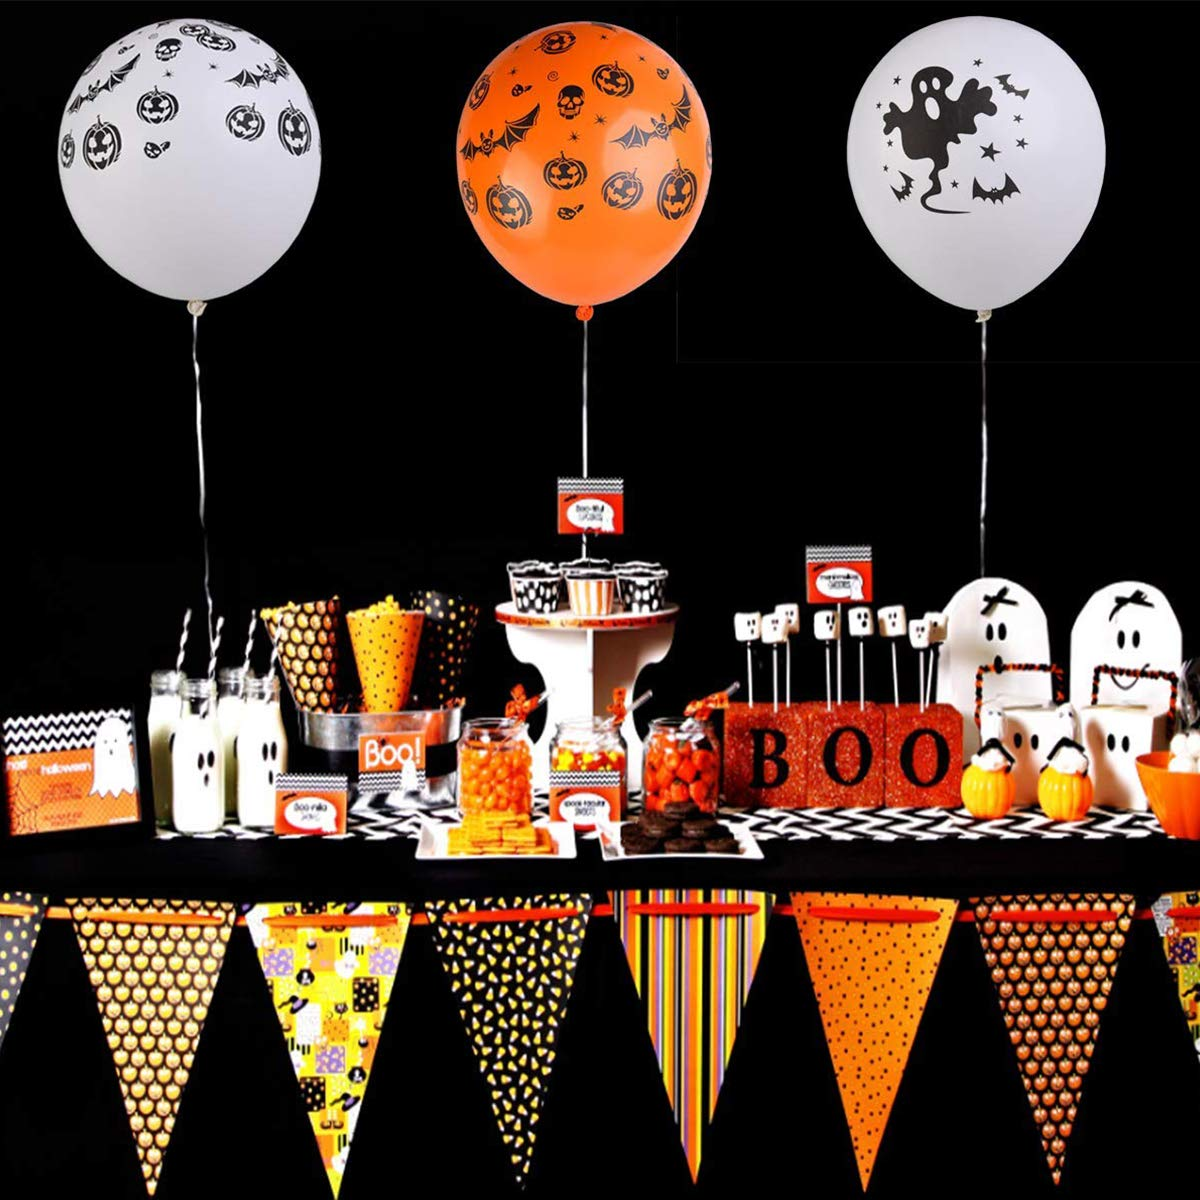 AIRERA Halloween Balloons Decorations - 100 Pieces 12 Inches Pumpkin Bat Specter Spider Web Latex Balloons for Halloween Party Supplies